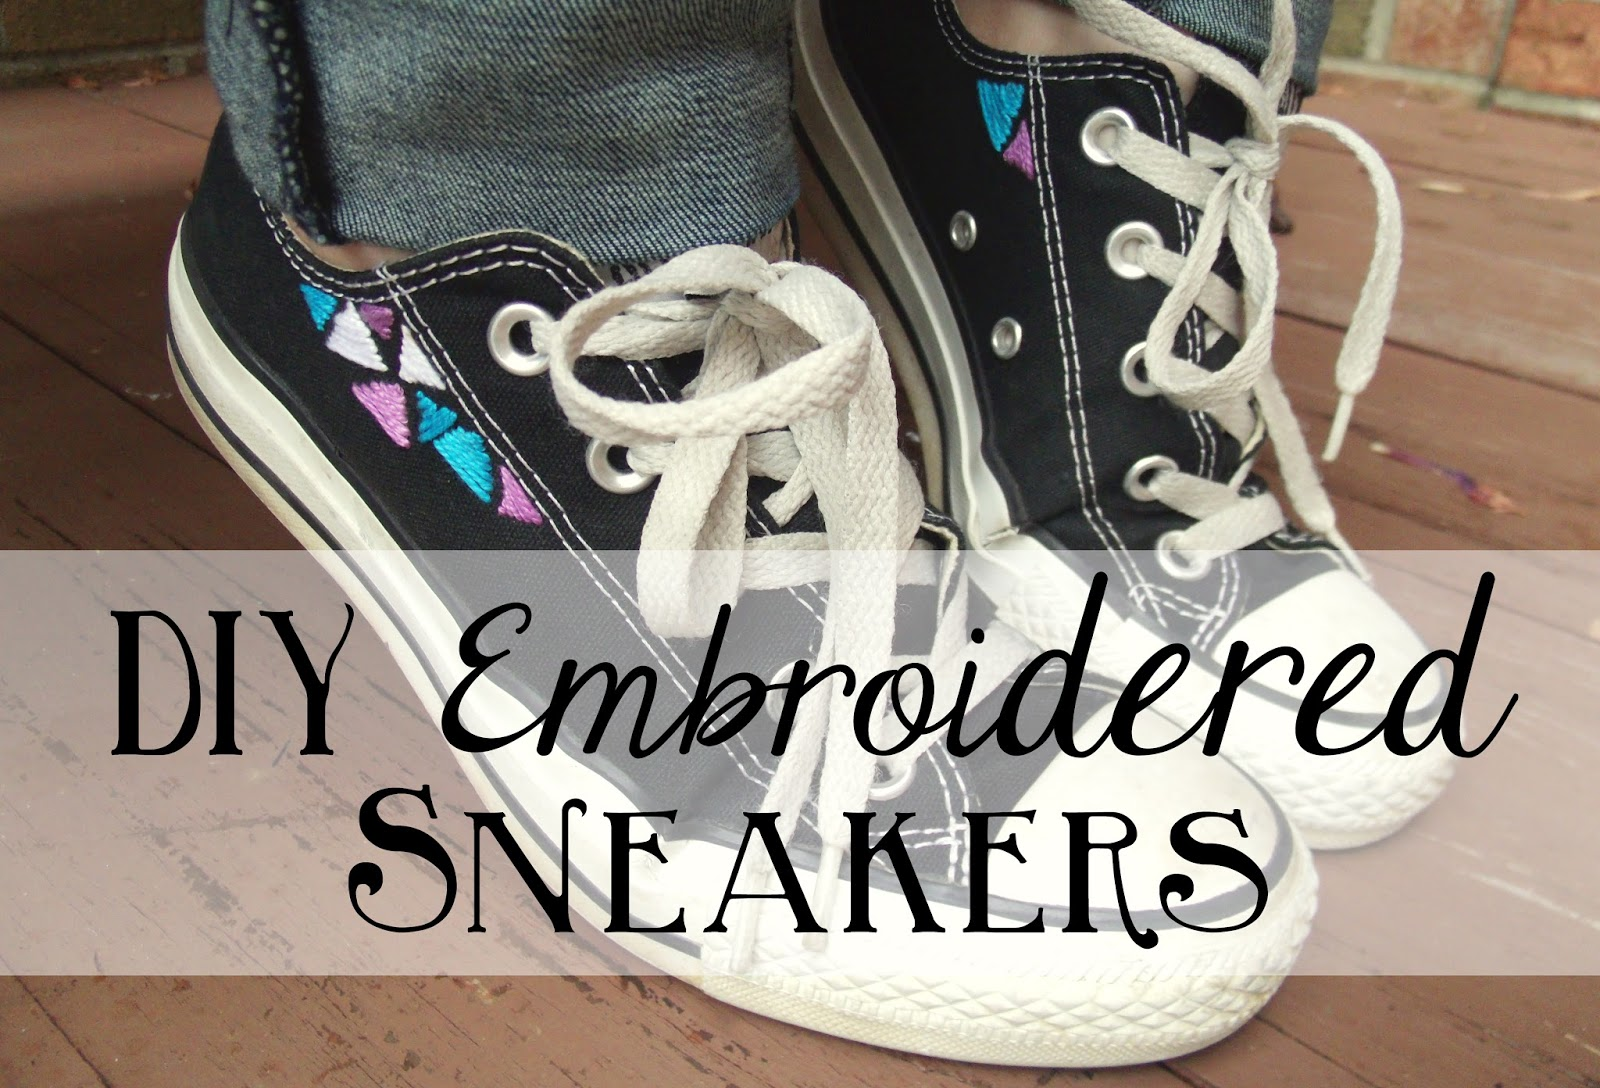 fe01cf213660 DIY  Embroidered Sneakers +  40 Target Giveaway!